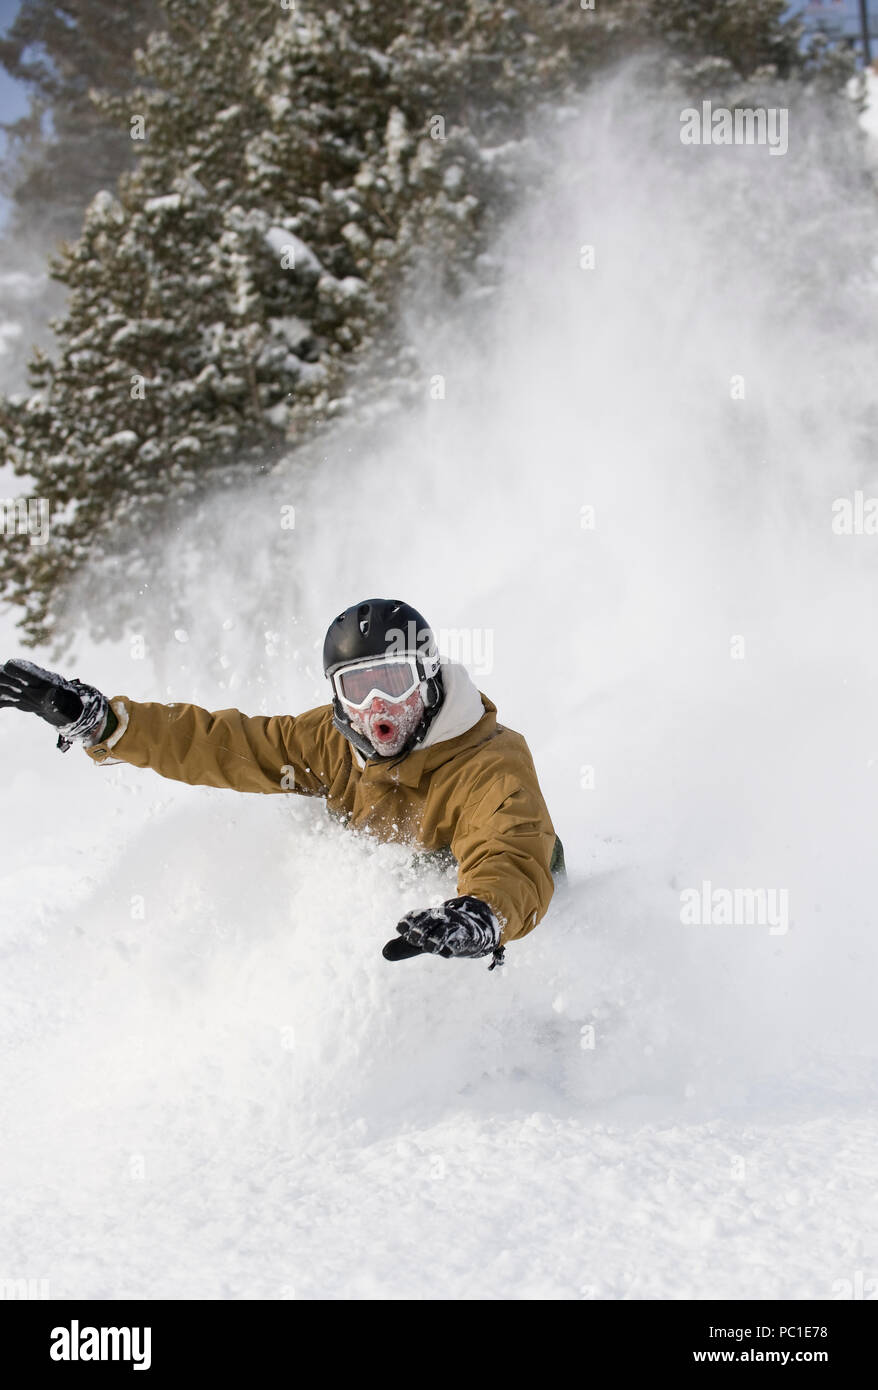 Happy snowboarder riding untracks fresh powder snow closeup. Stock Photo